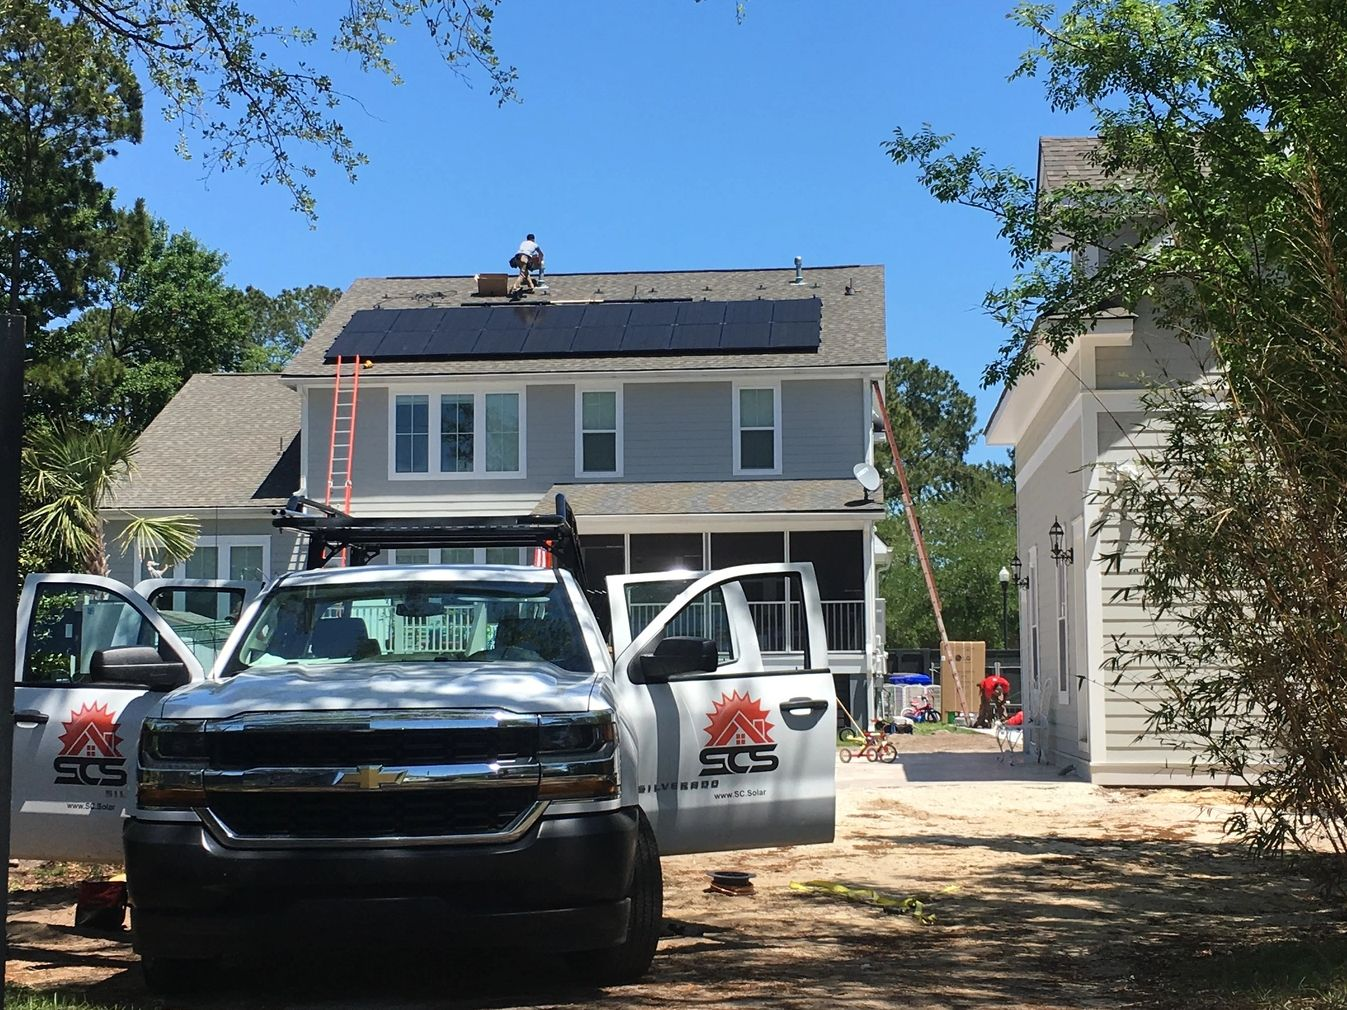 South Carolina Solar installing a roof top solar energy system with LG solar lanels